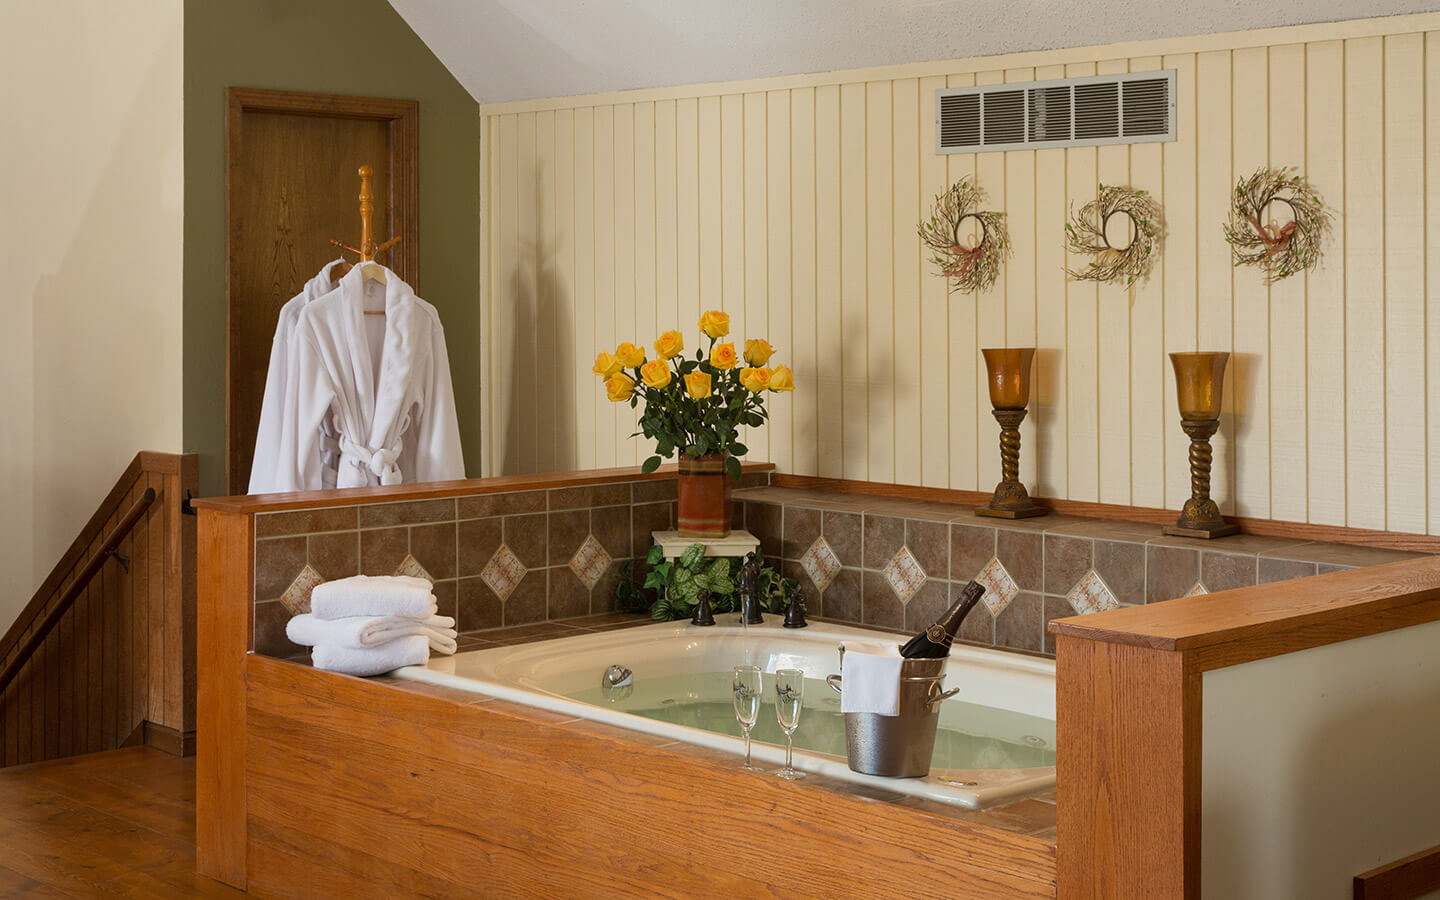 Bath at a Kansas Bed and Breakfast